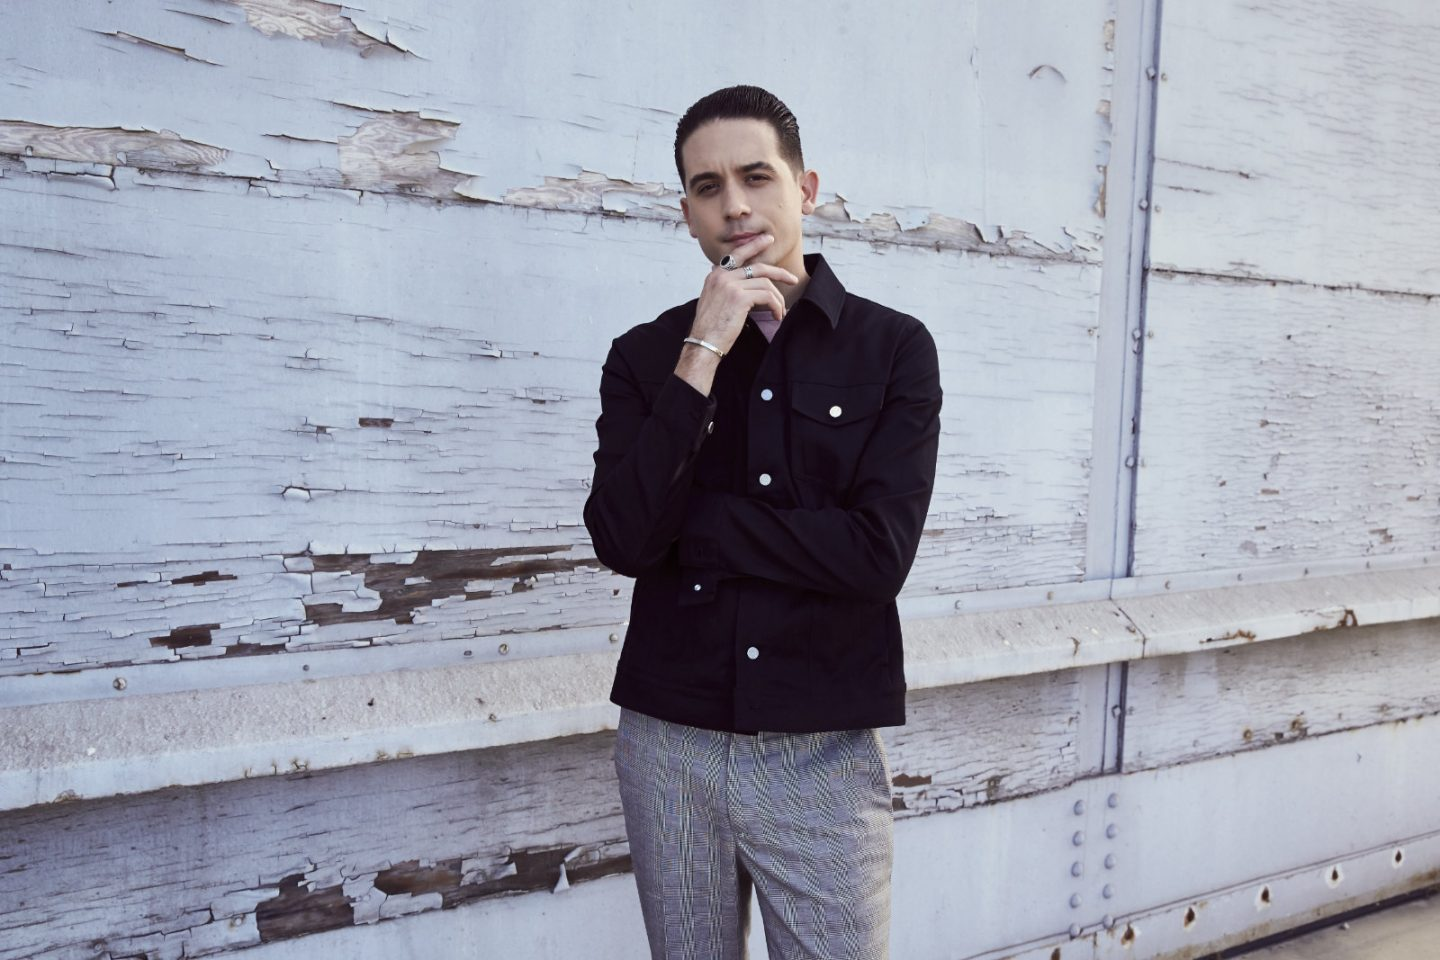 G-Eazy × H&M menswear collaboration to appear in March 2018